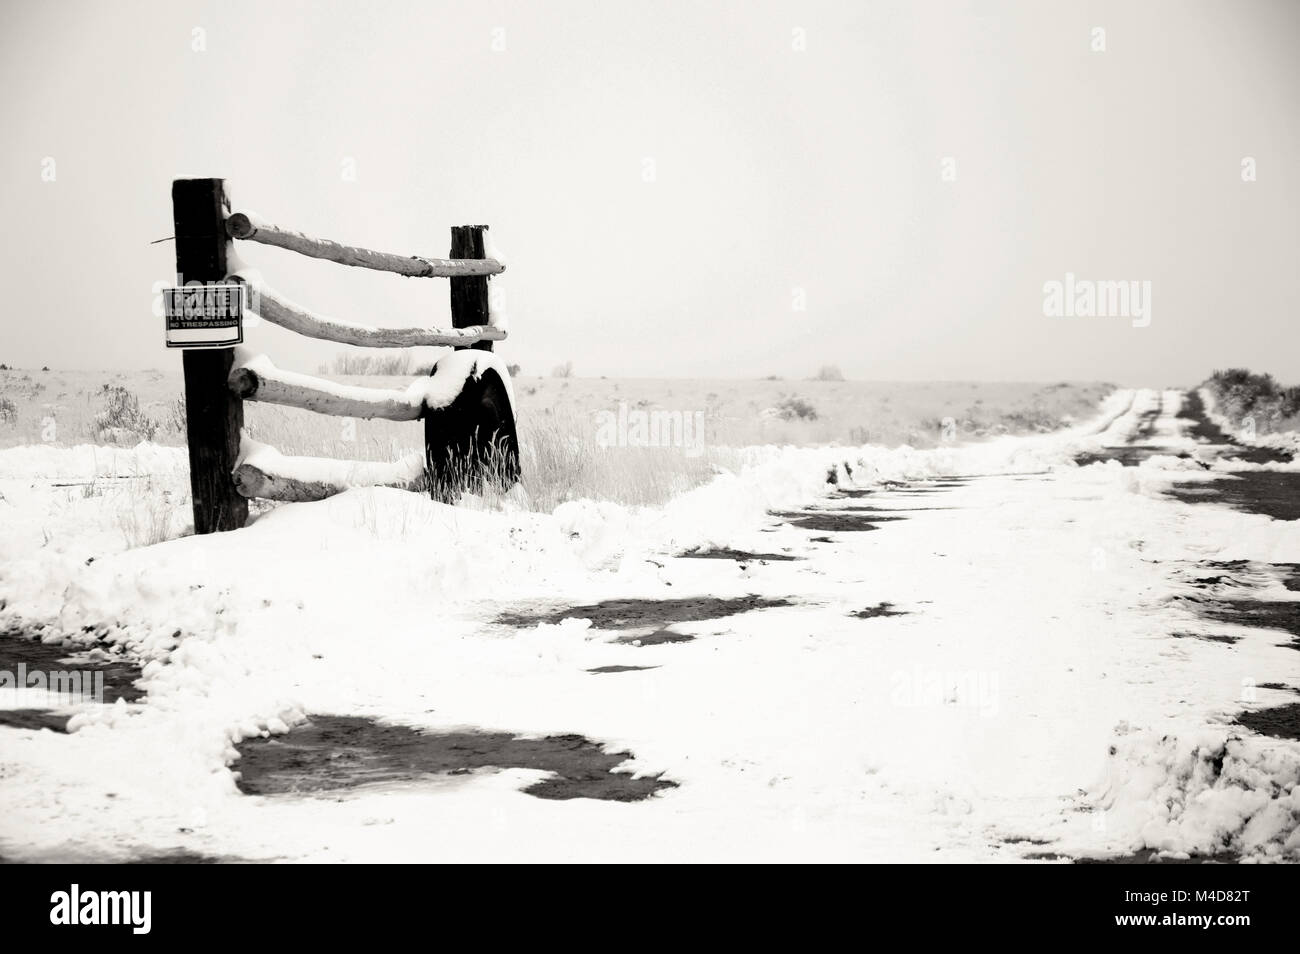 An old tire leaning up against a fence post in the Utah desert patched with snow in black and white. - Stock Image